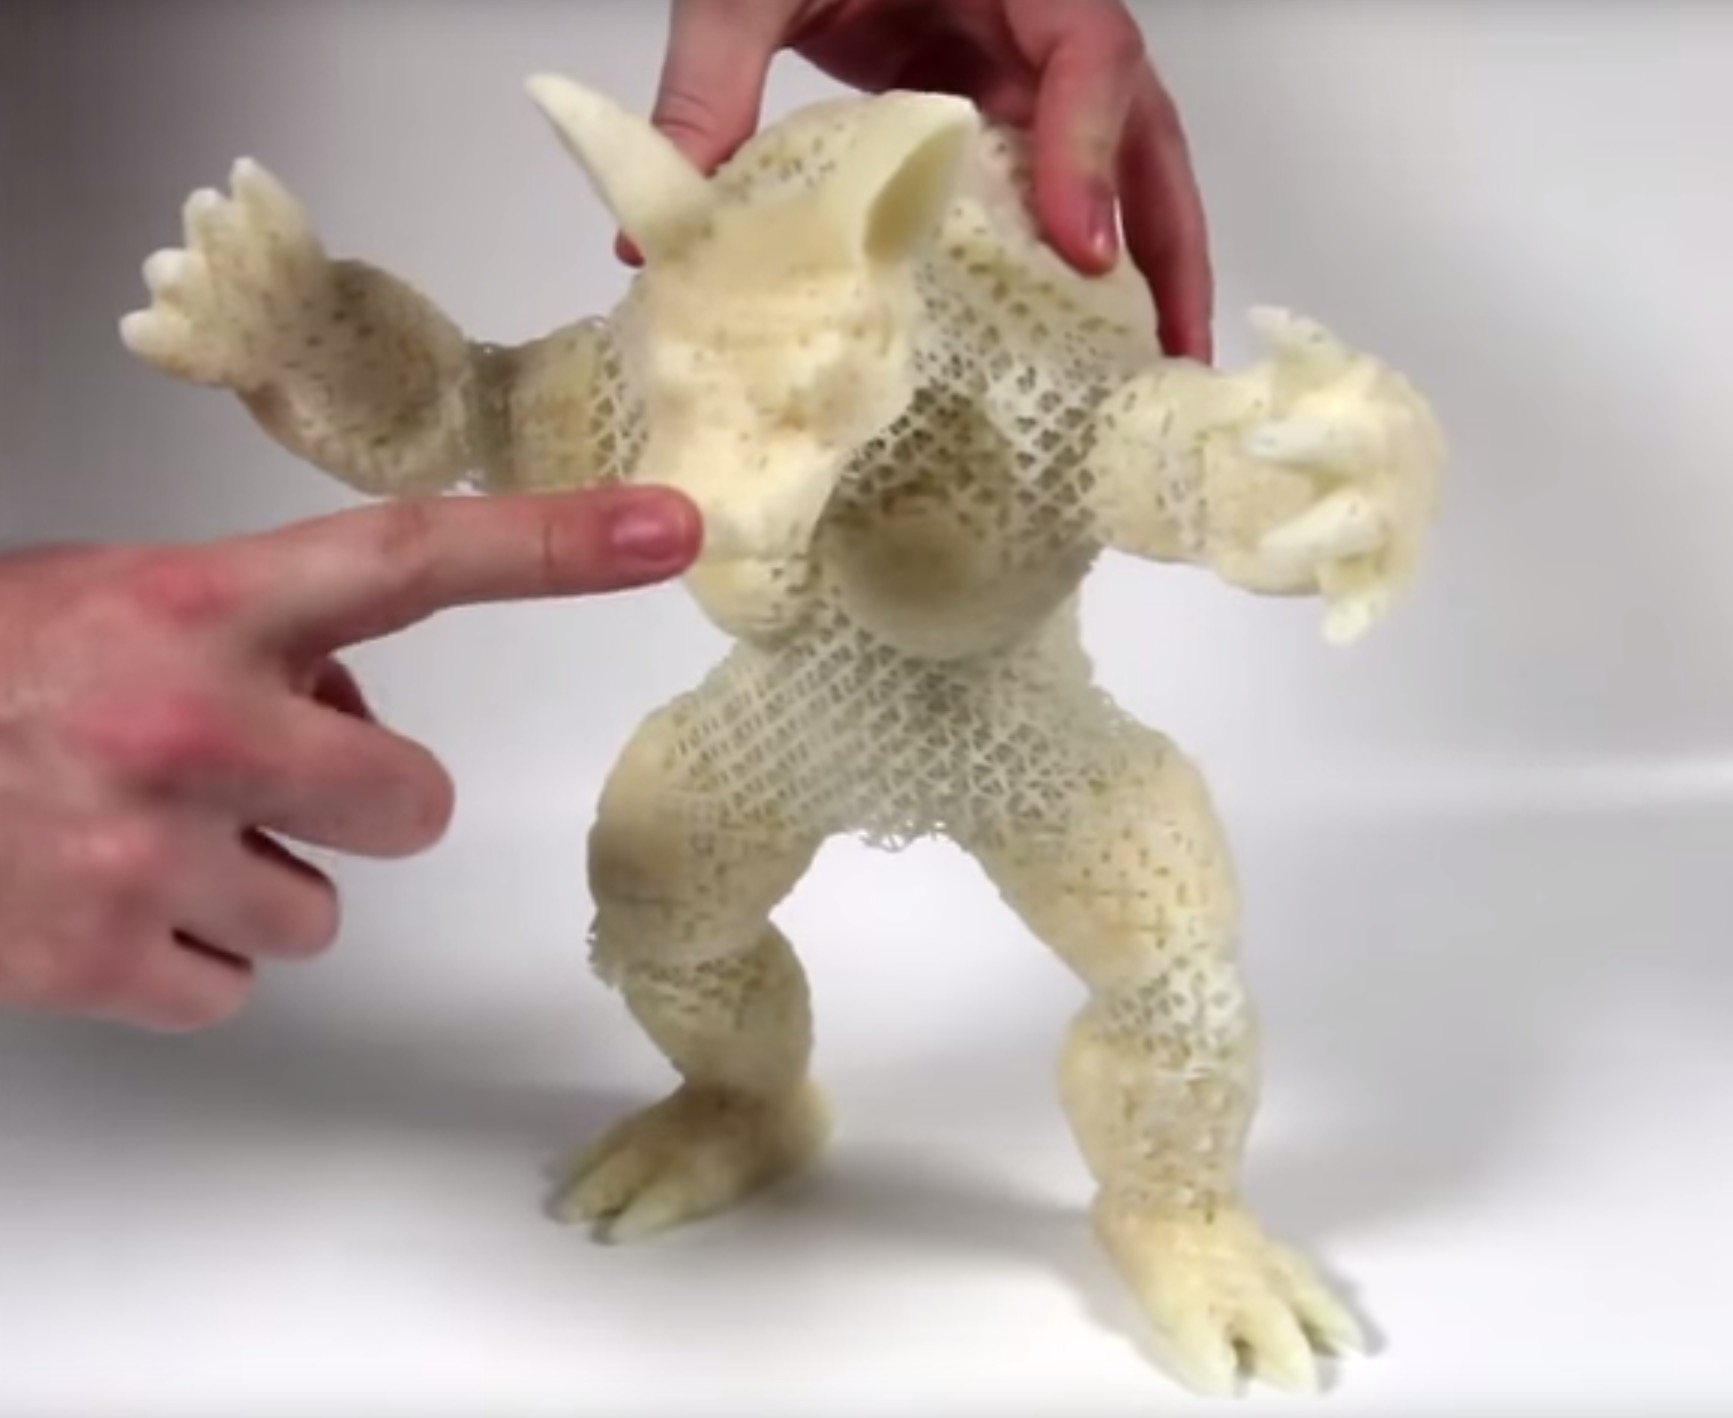 3d Print Flexible Objects With Solid Plastic Disney